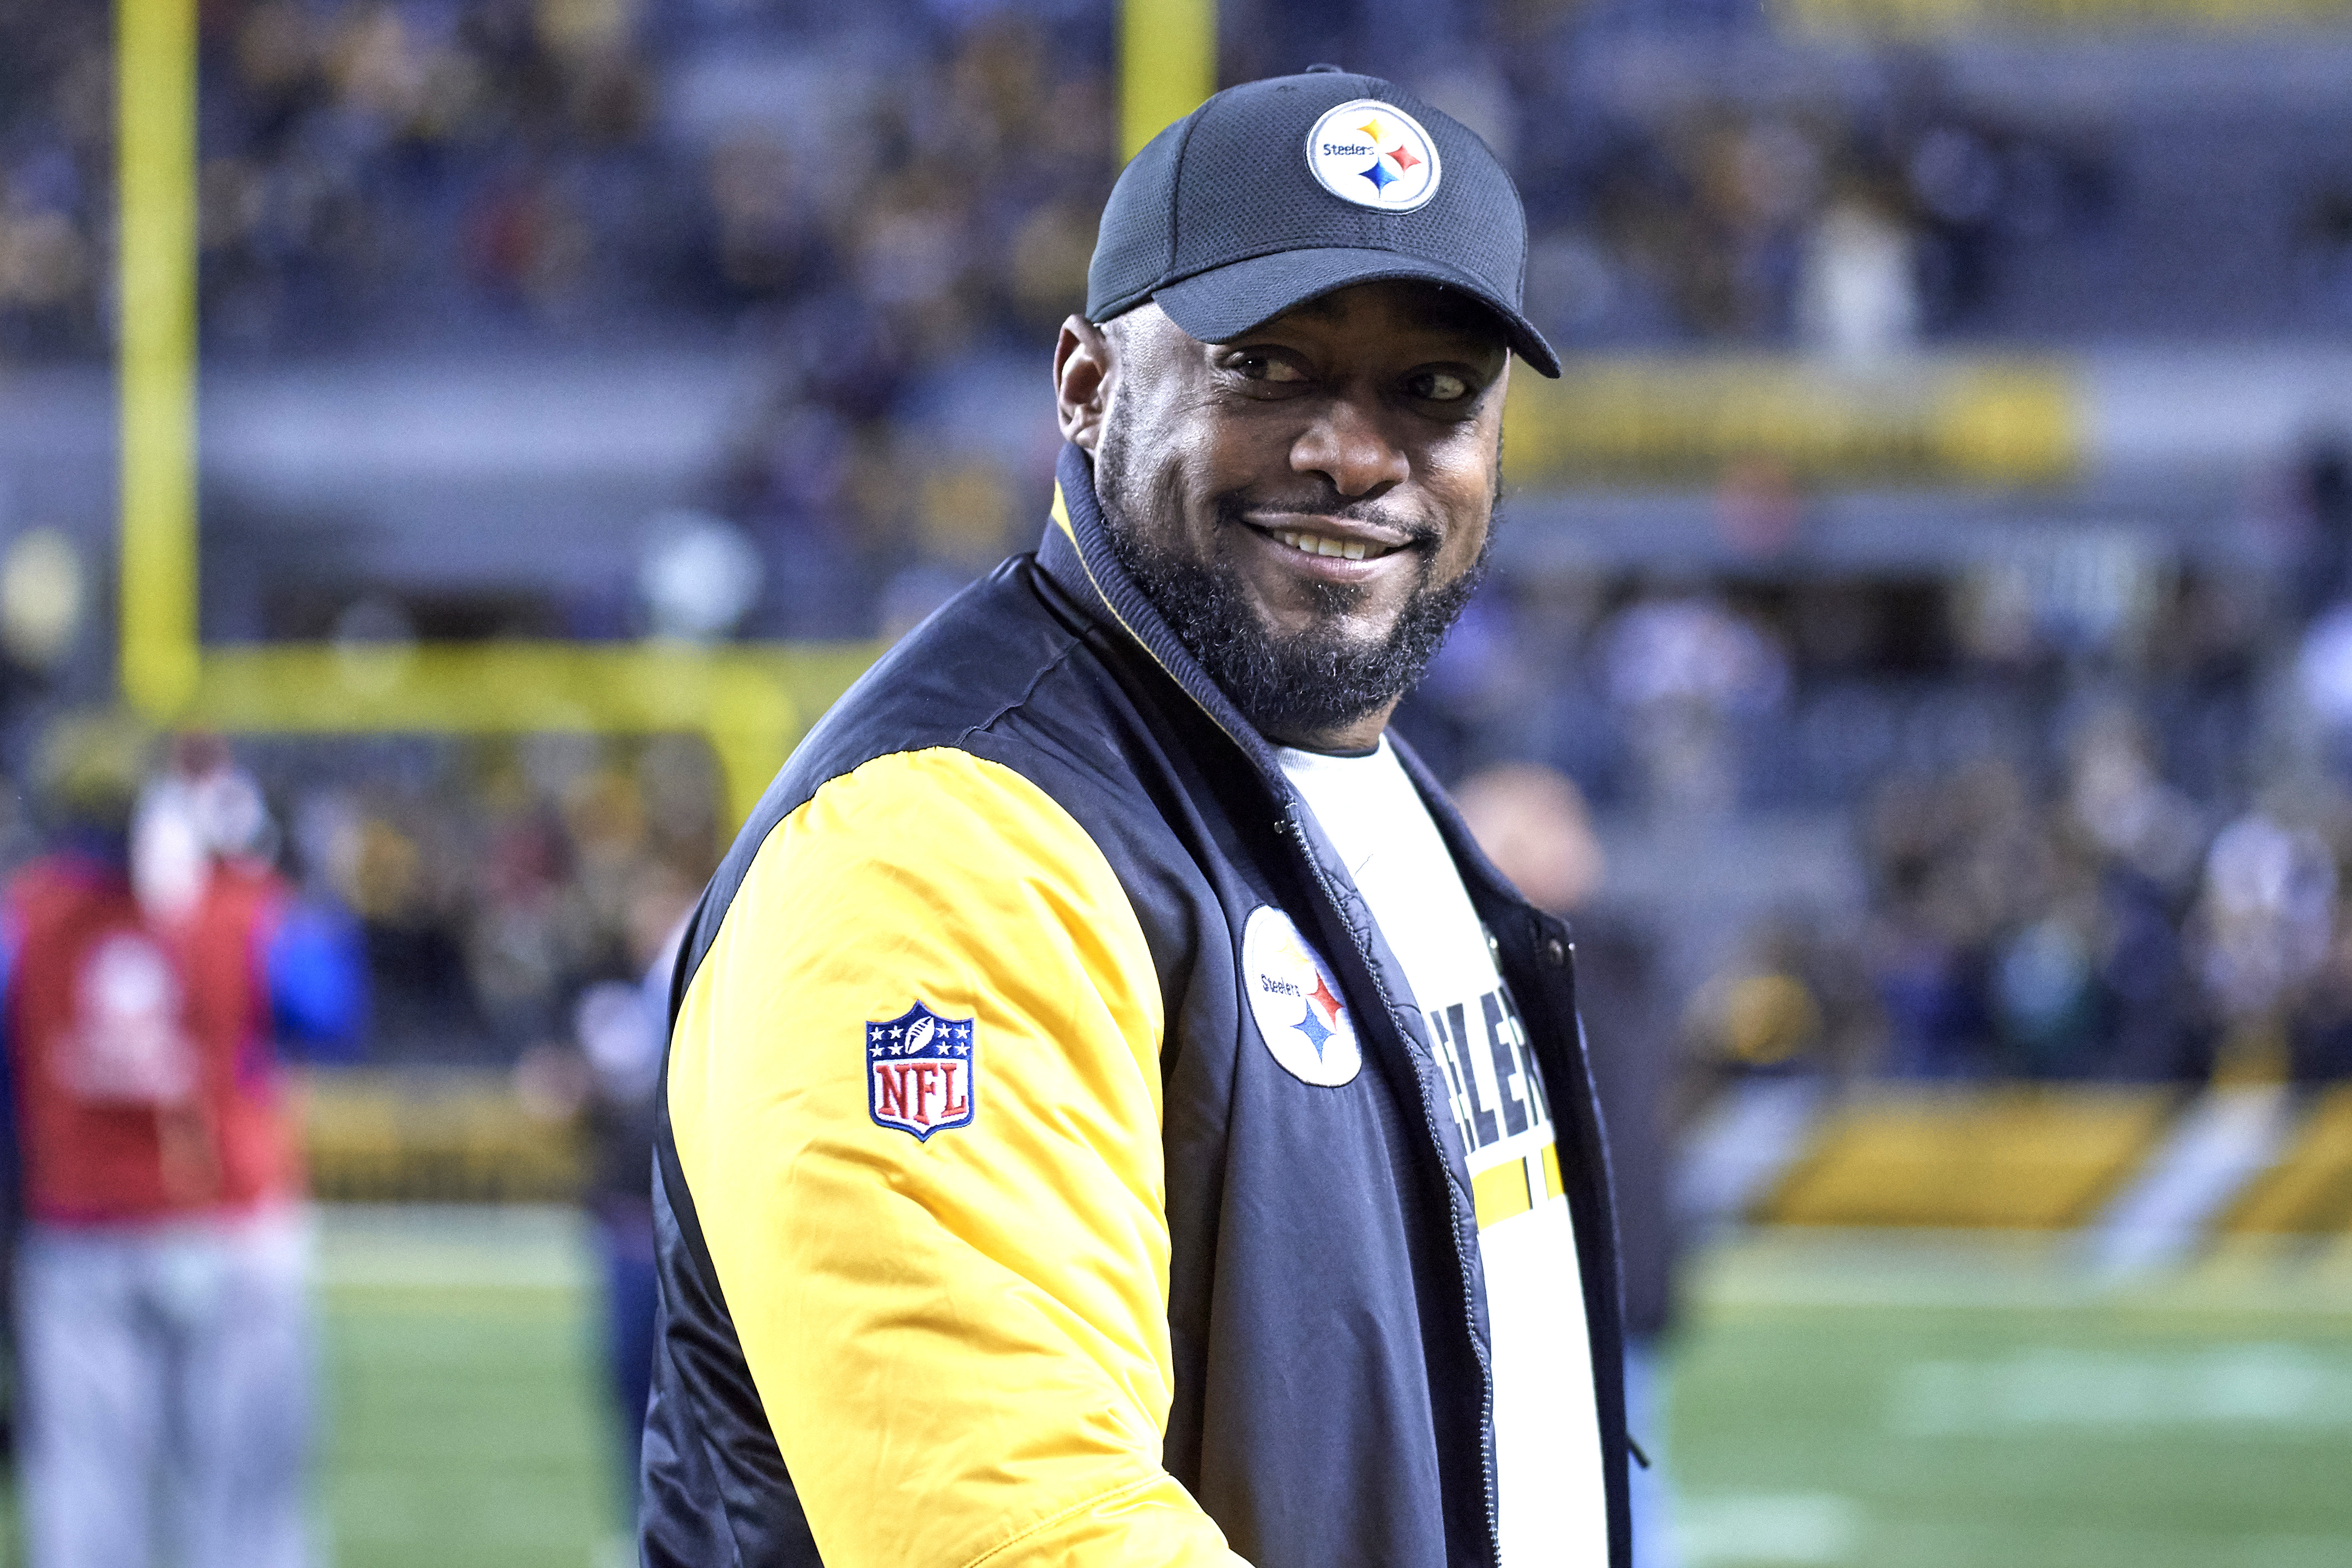 e4385849e63 Tomlin roams the Steelers sideline during games